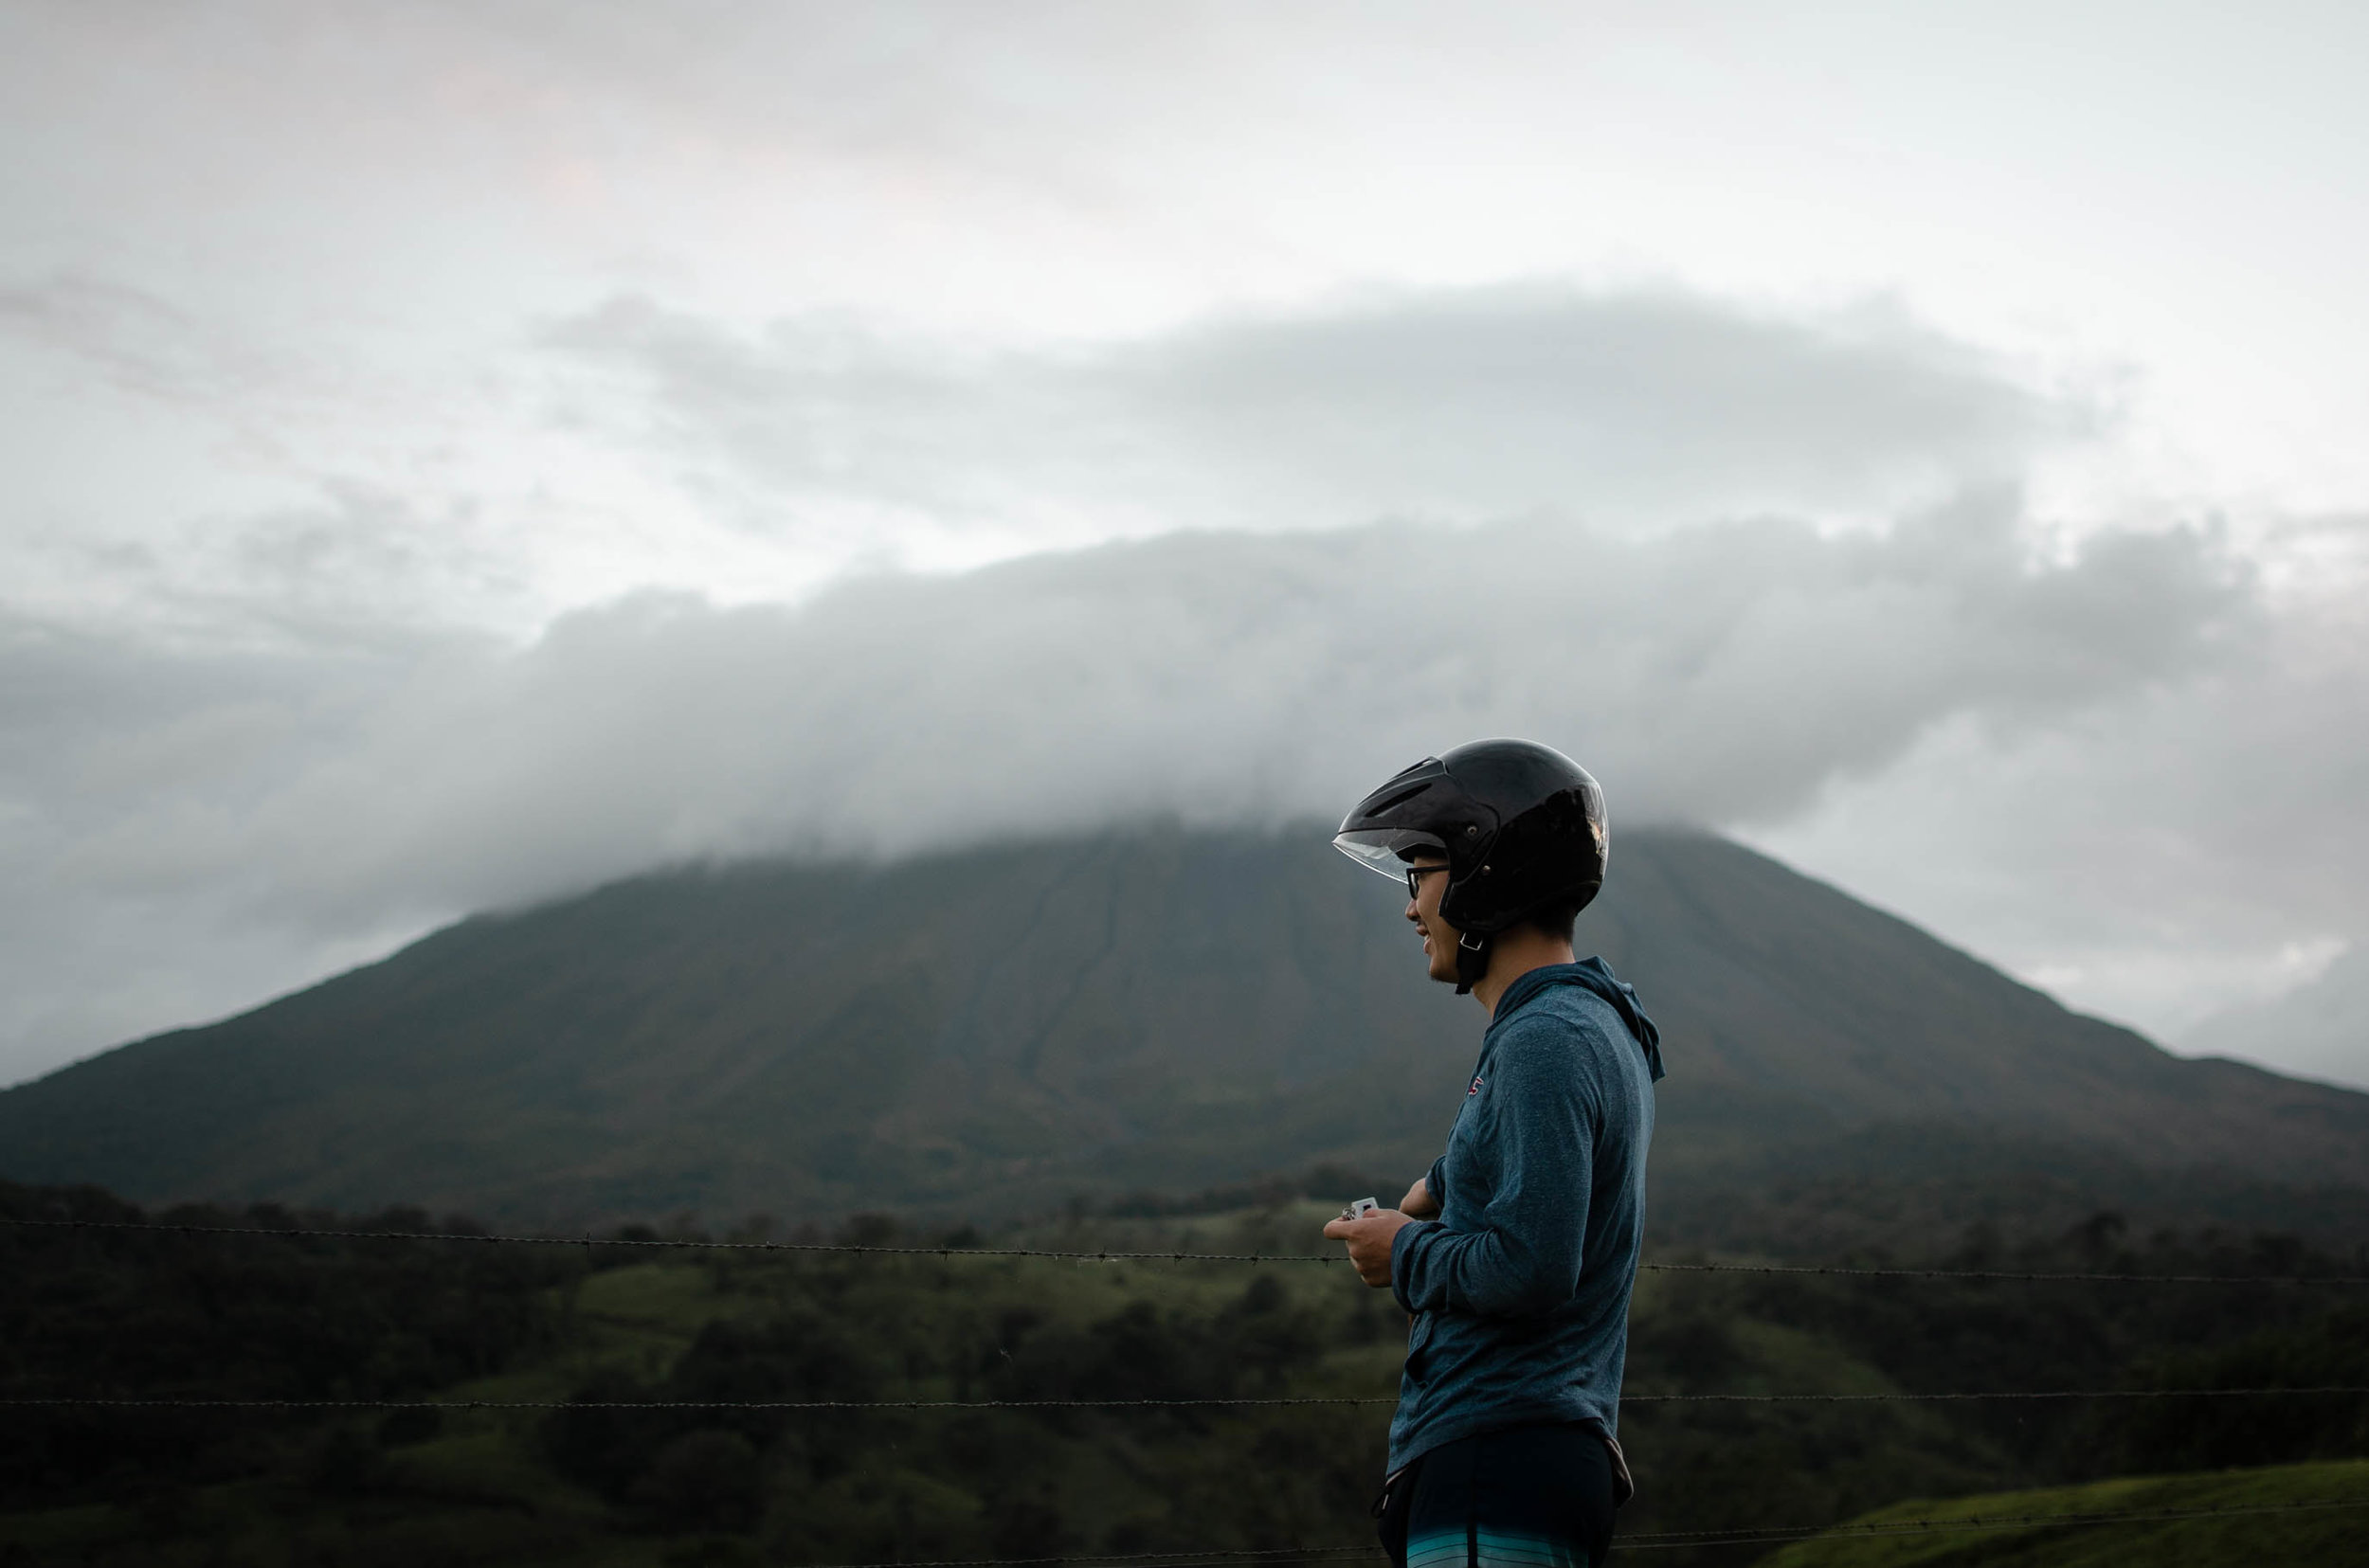 Rode a scooter to look at Arenal Volcano in La Fortuna